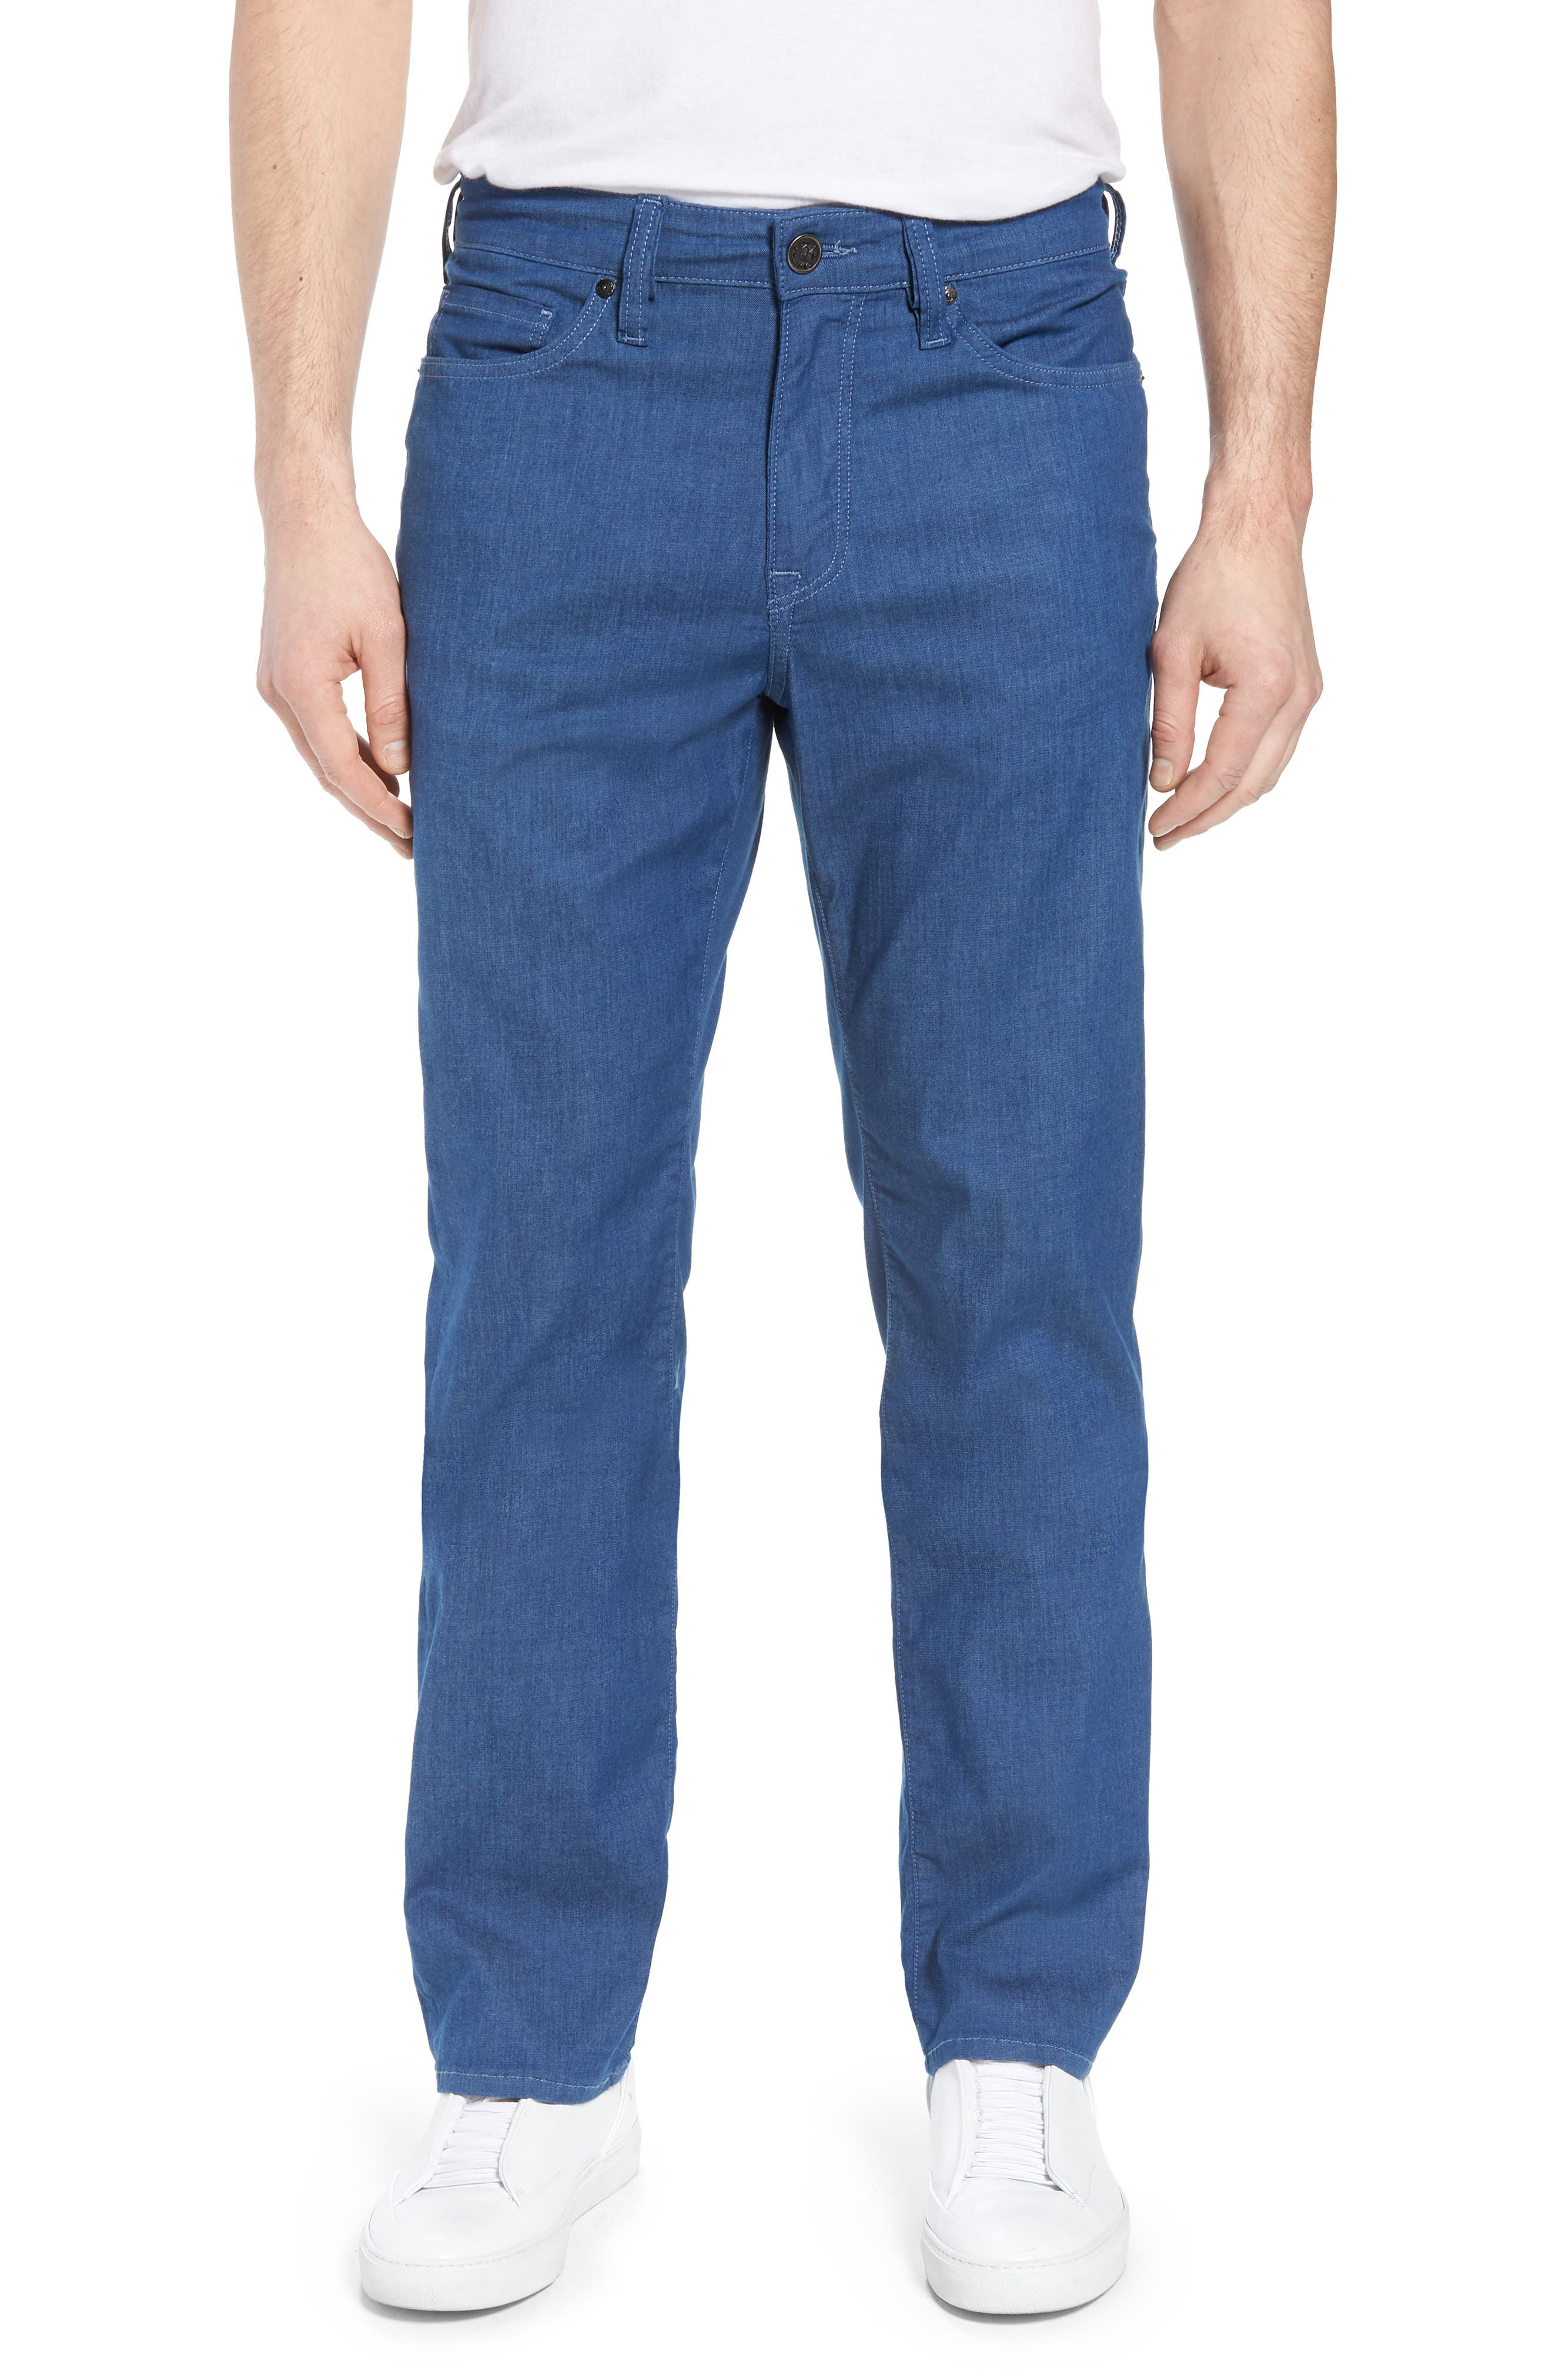 Main Image - 34 Heritage Charisma Relaxed Fit Jeans (Mid Maui Denim)